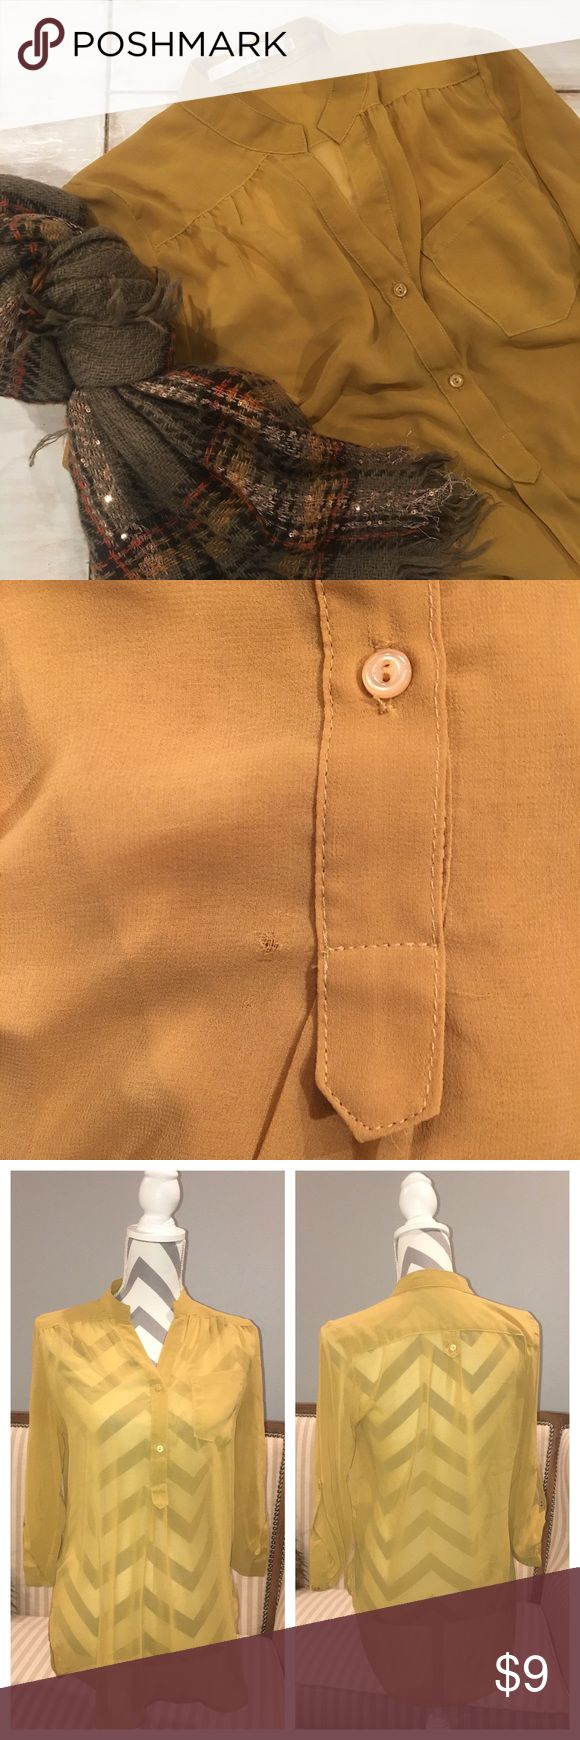 Sheer Mustard Shirt 2 buttons   flowing loose fit   small imperfection on front - see photo Tops Blouses